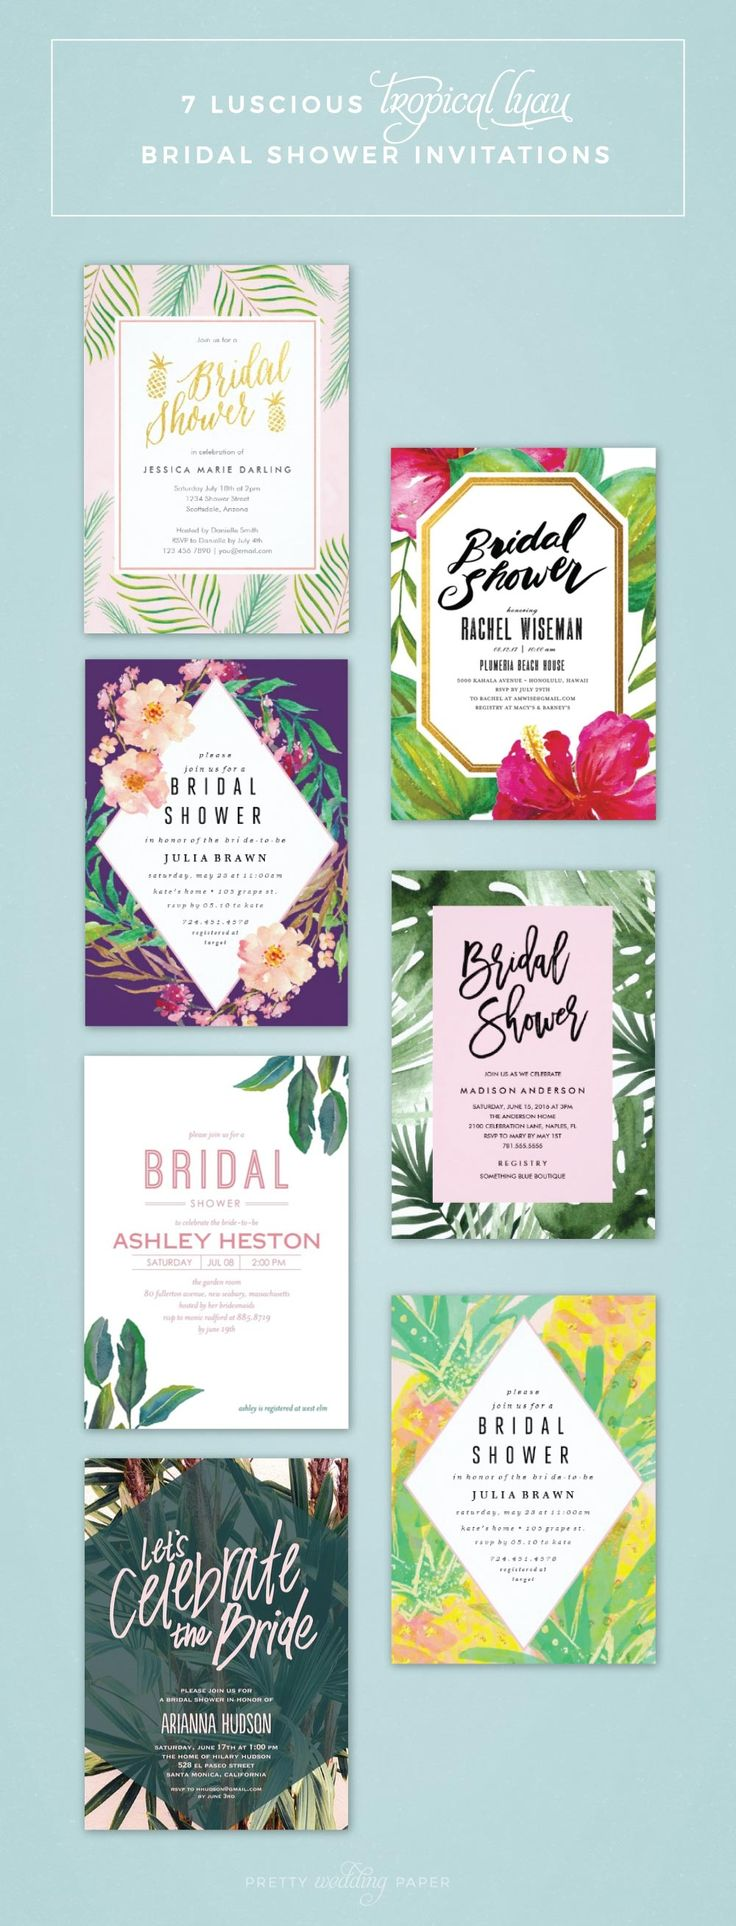 Gorgeous bridal shower invitations for a tropical bridal shower or bridal shower…